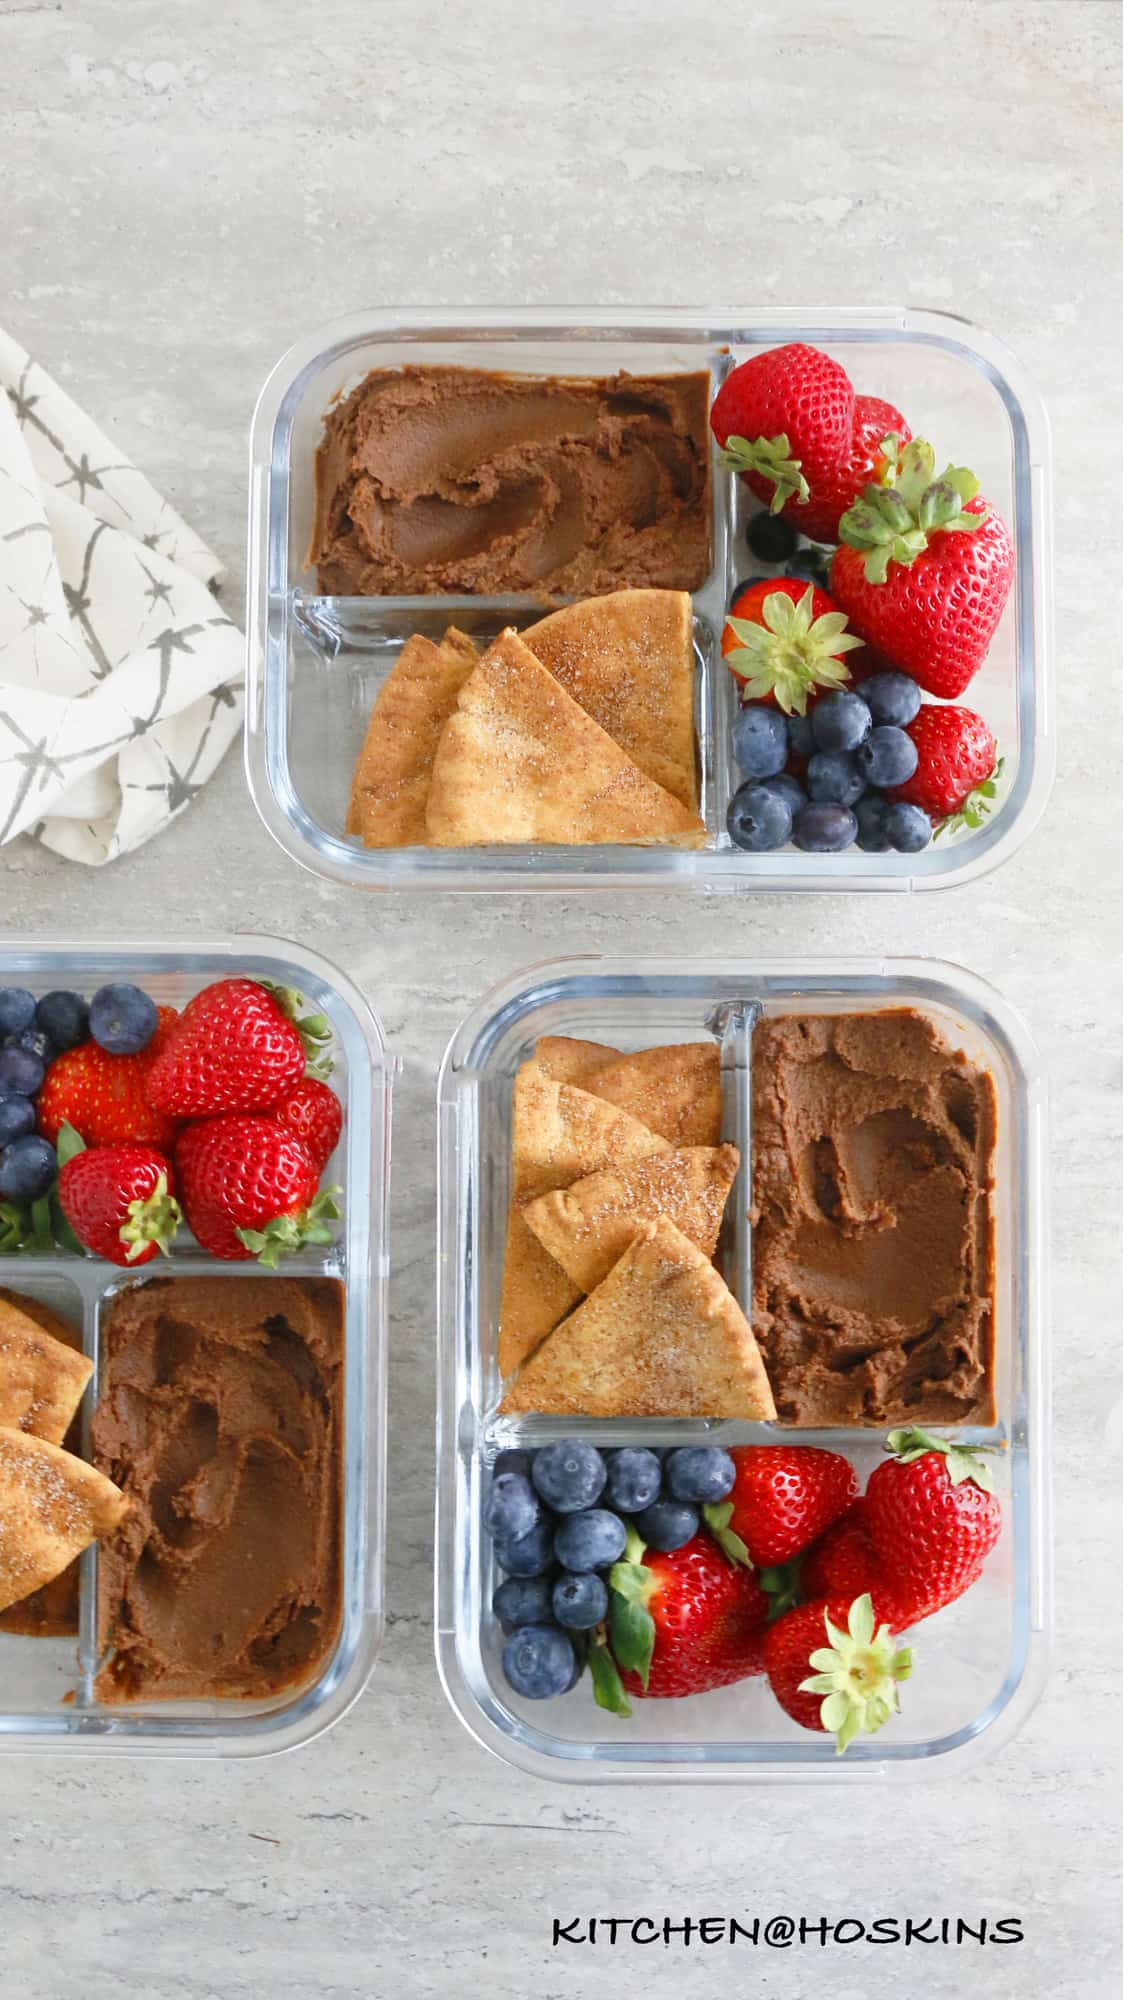 4 INGREDIENT GUILT FREE CHOCOLATE HUMMUS